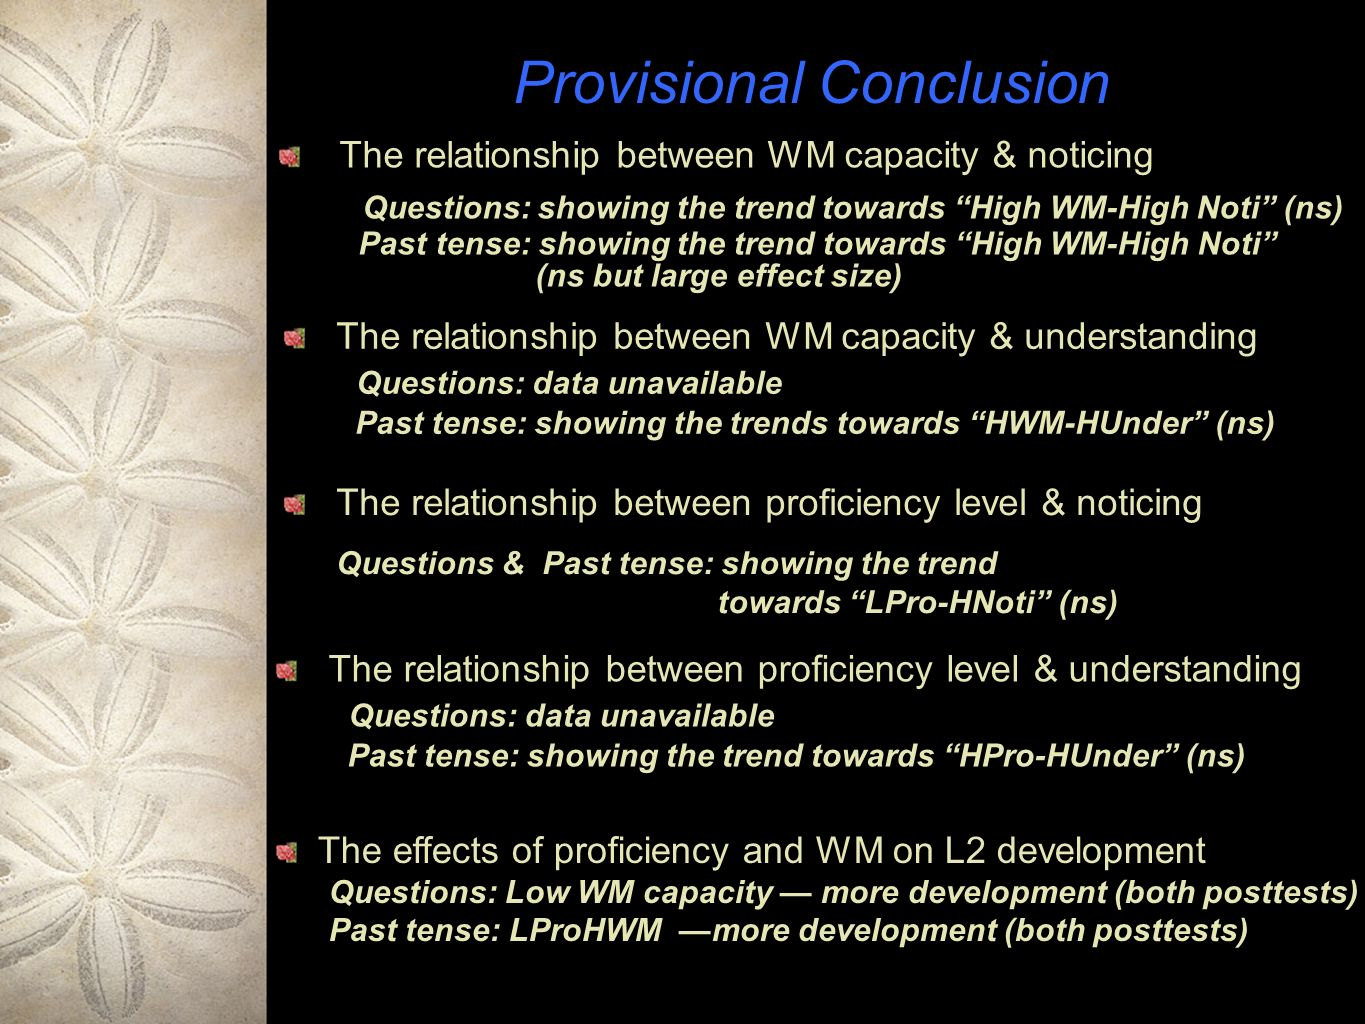 Provisional Conclusion